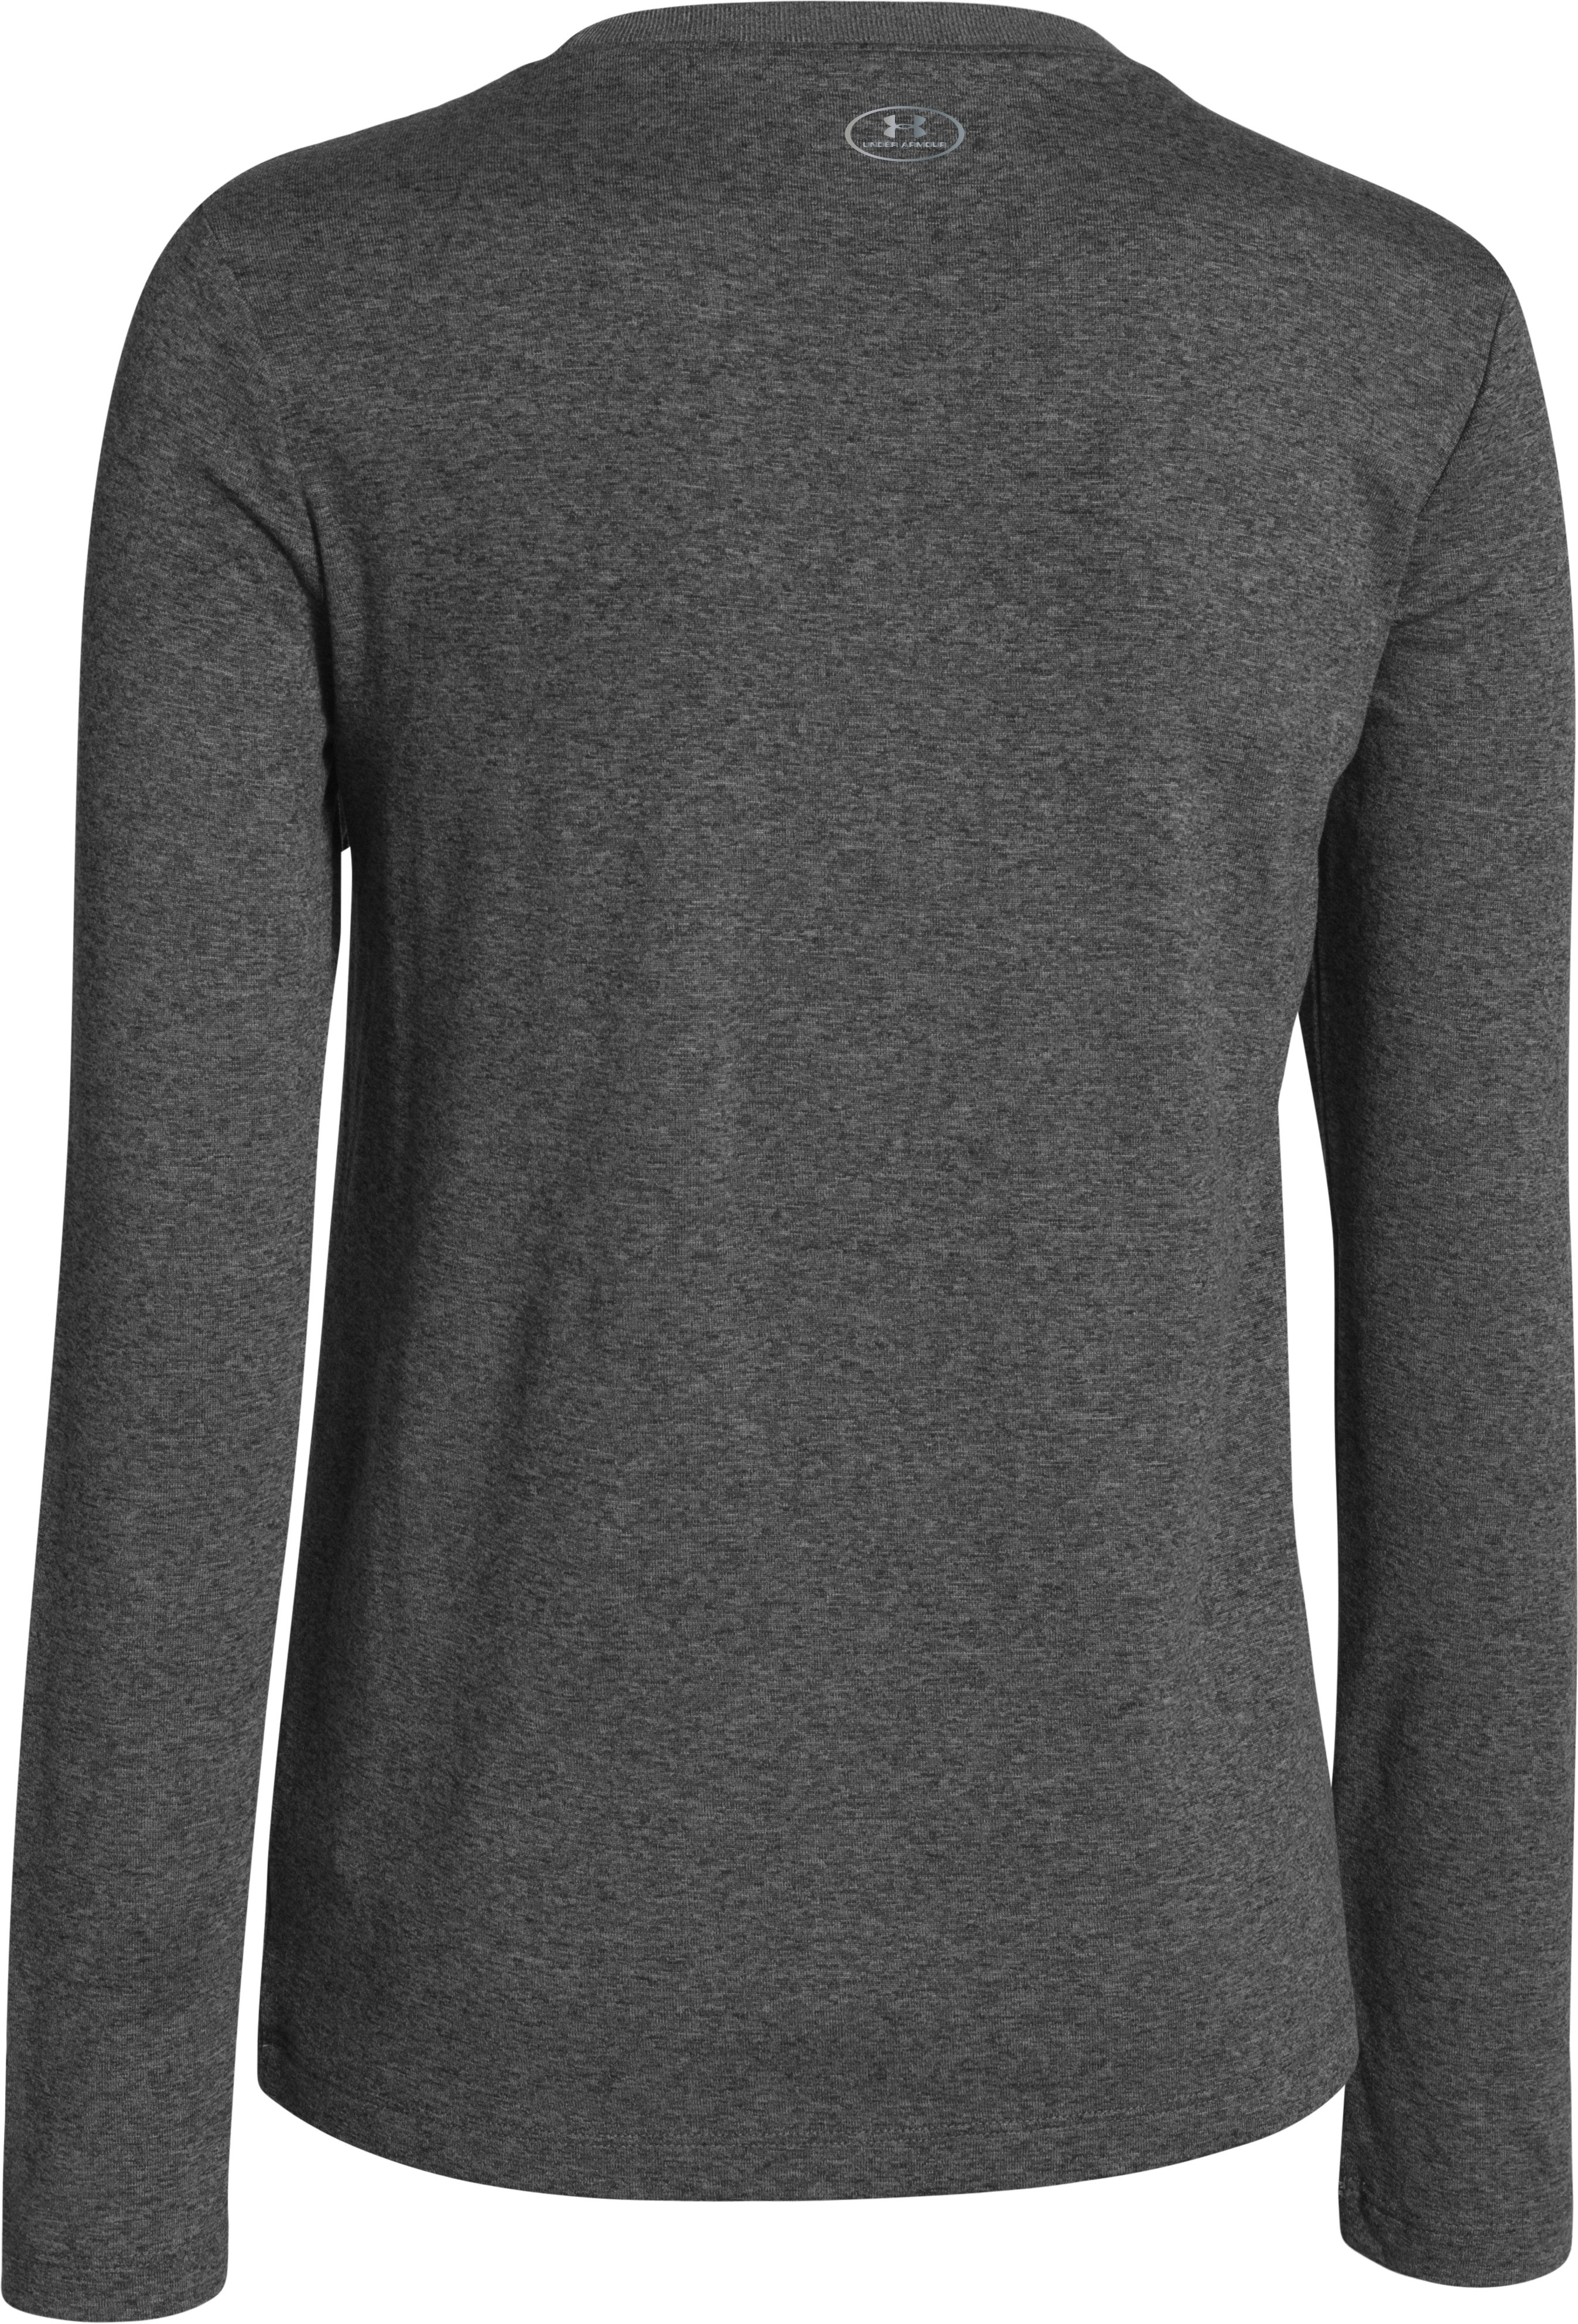 Girls' UA Tech™ Big Logo Long Sleeve, Carbon Heather